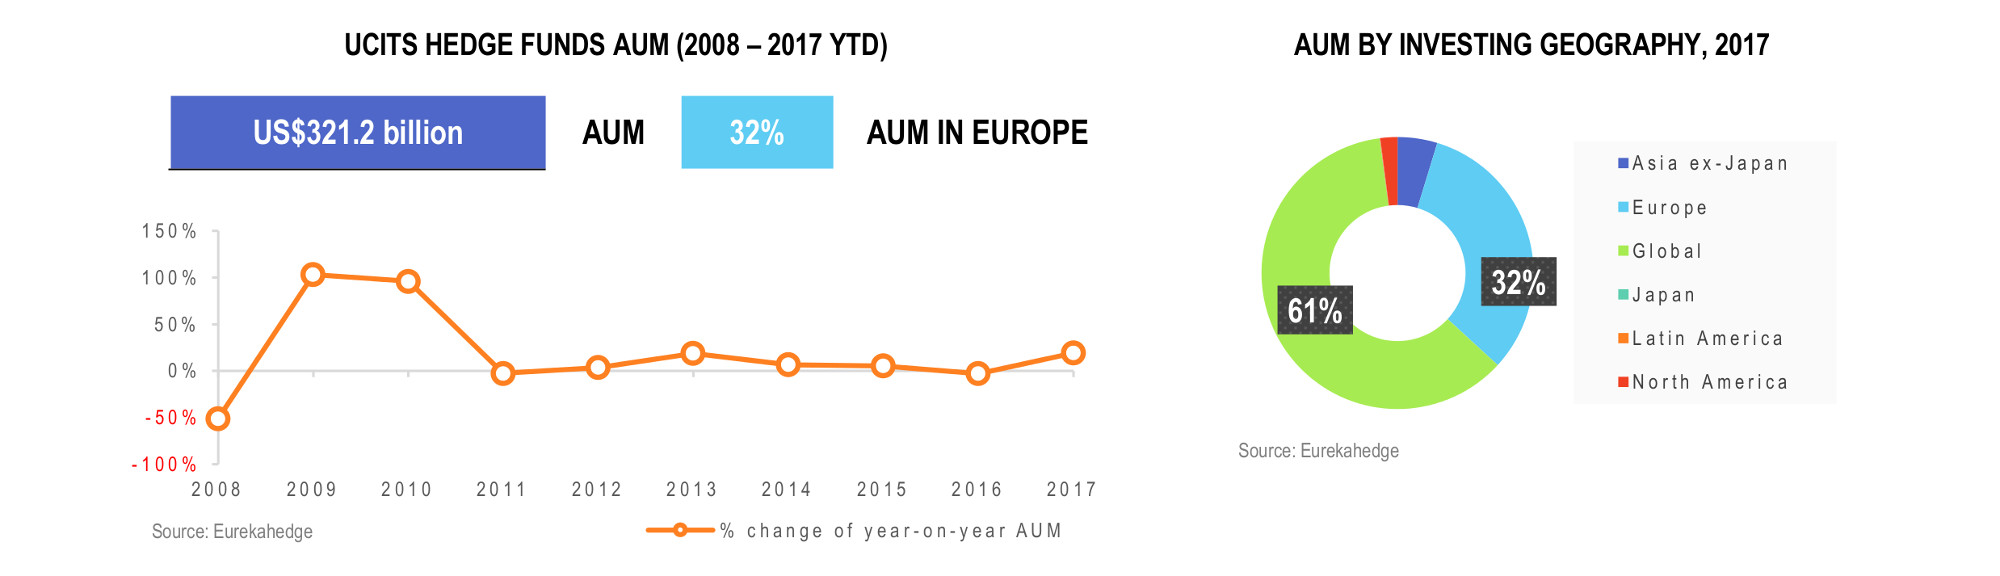 UCITS Hedge Funds Infographic February 2018 - AUM